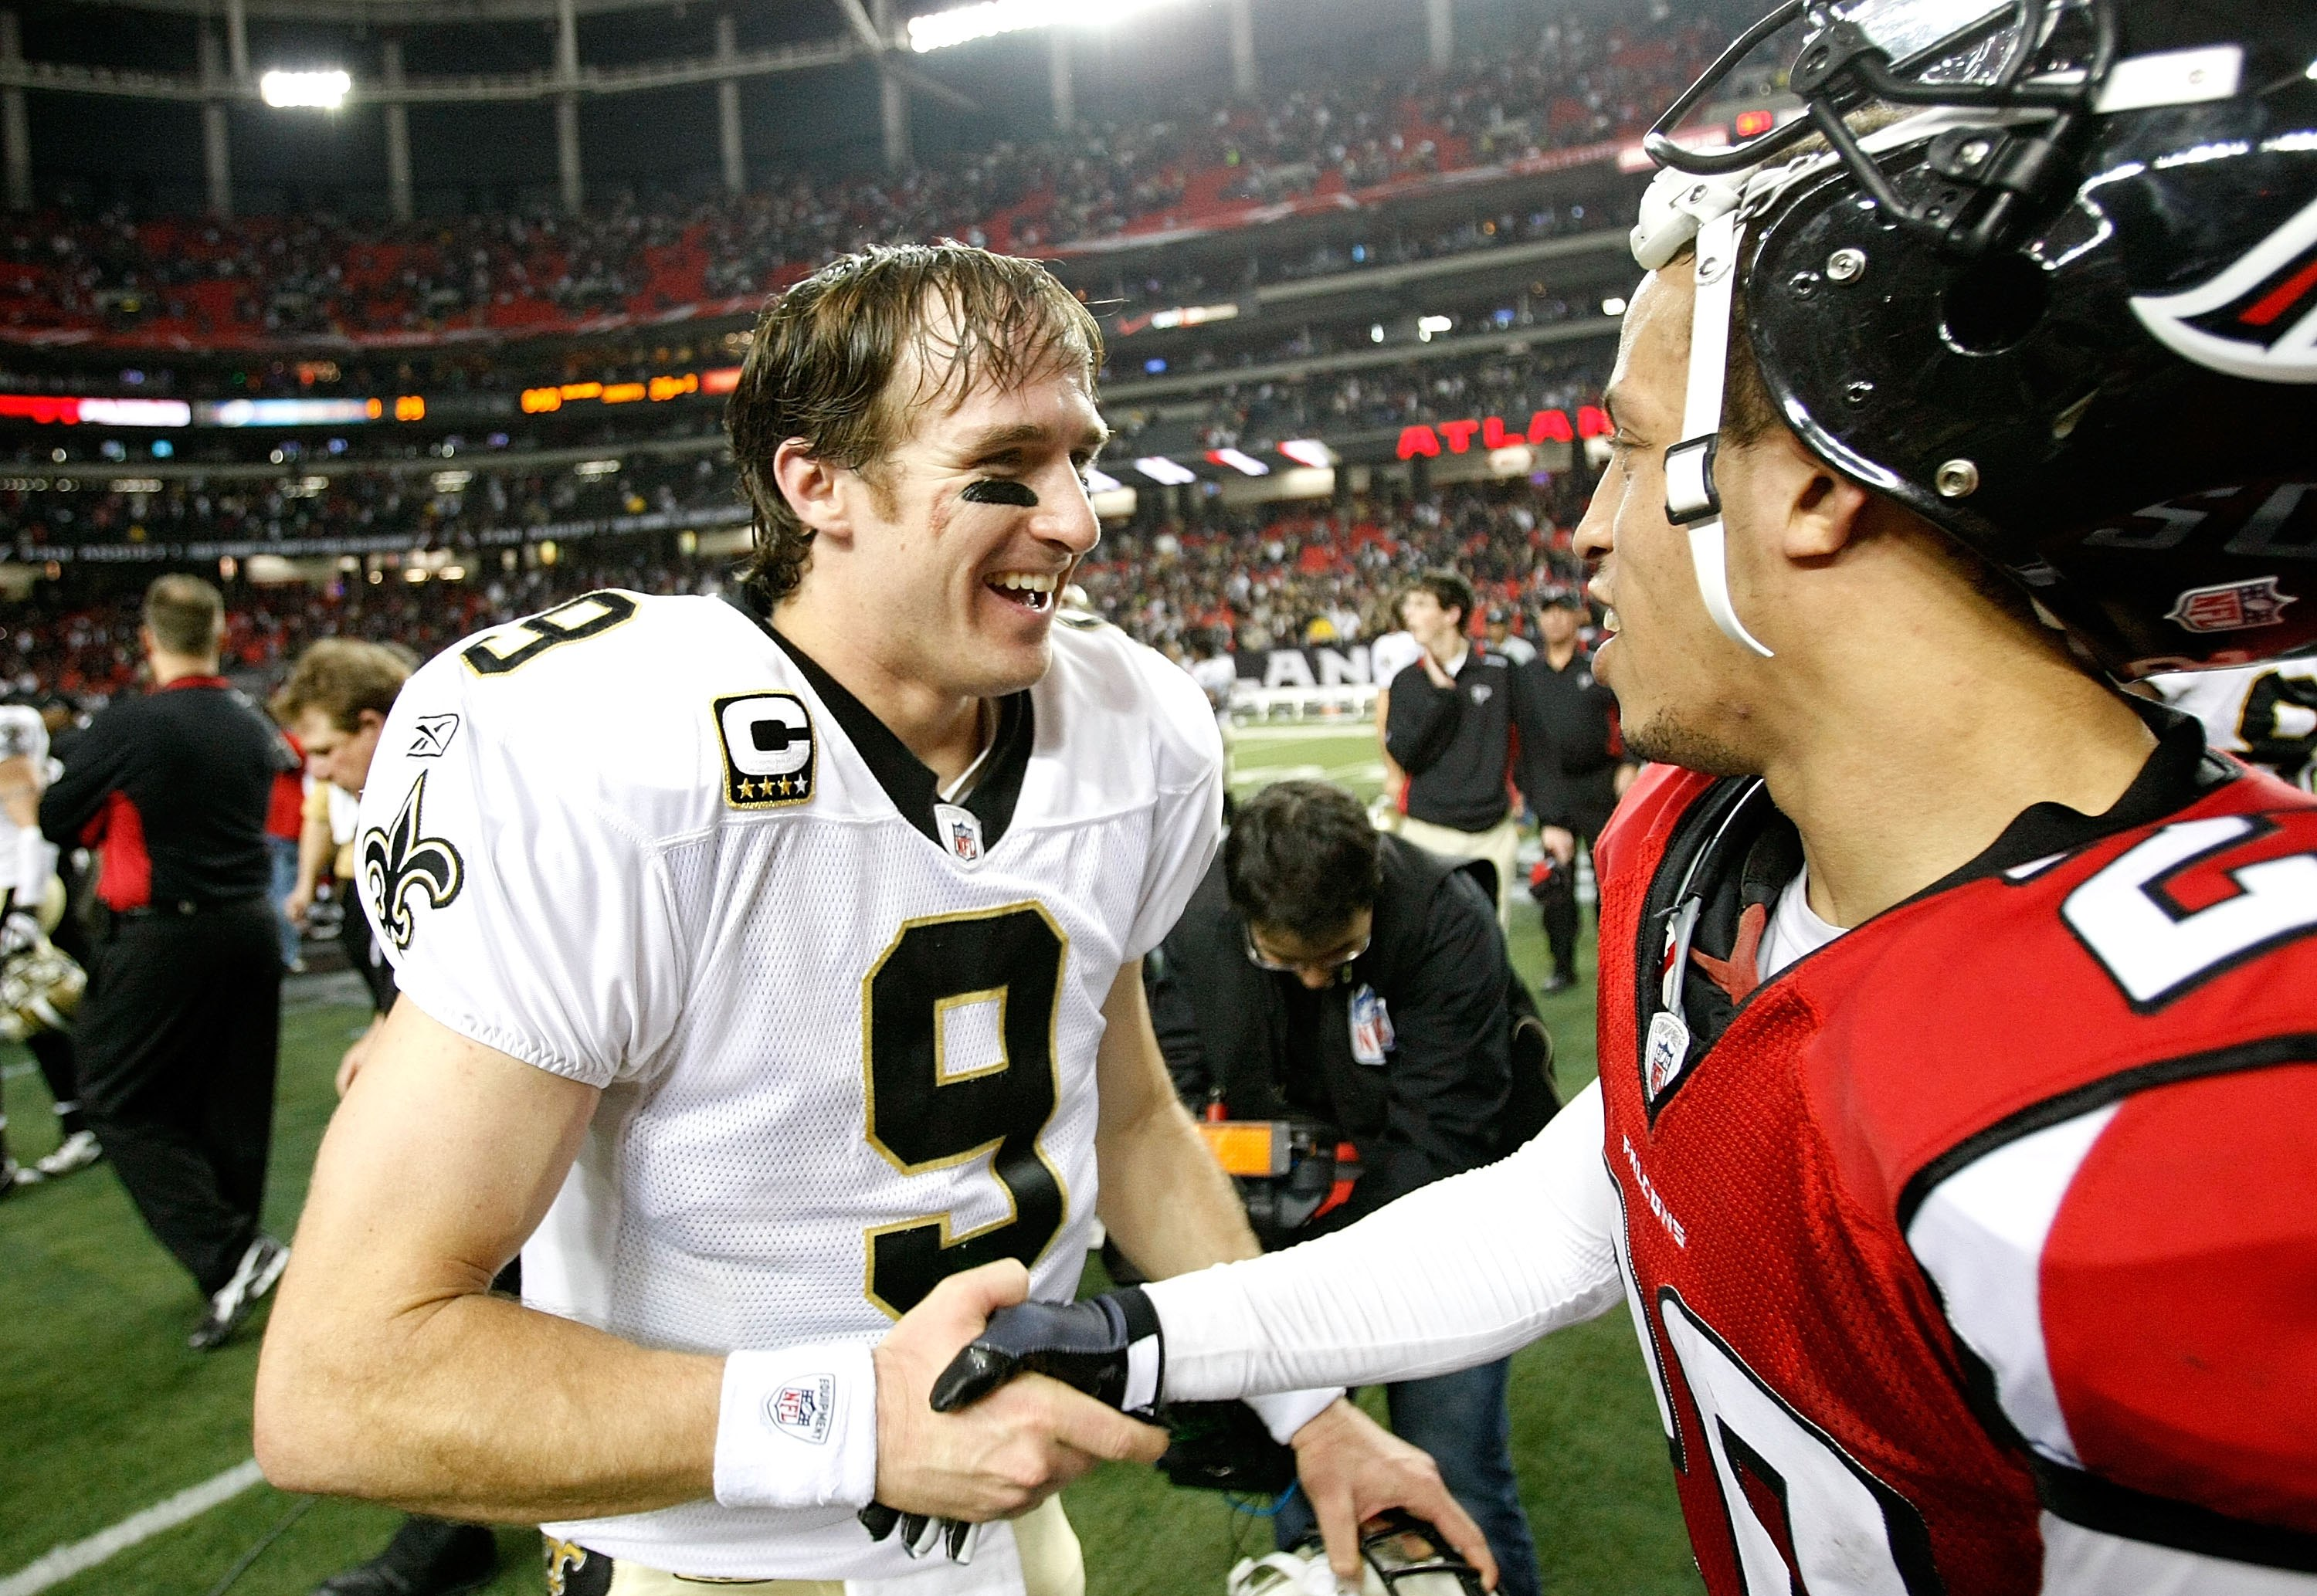 ATLANTA - DECEMBER 13:  Quarterback Drew Brees #9 of the New Orleans Saints against Brent Grimes #20 of the Atlanta Falcons at Georgia Dome on December 13, 2009 in Atlanta, Georgia.  (Photo by Kevin C. Cox/Getty Images)